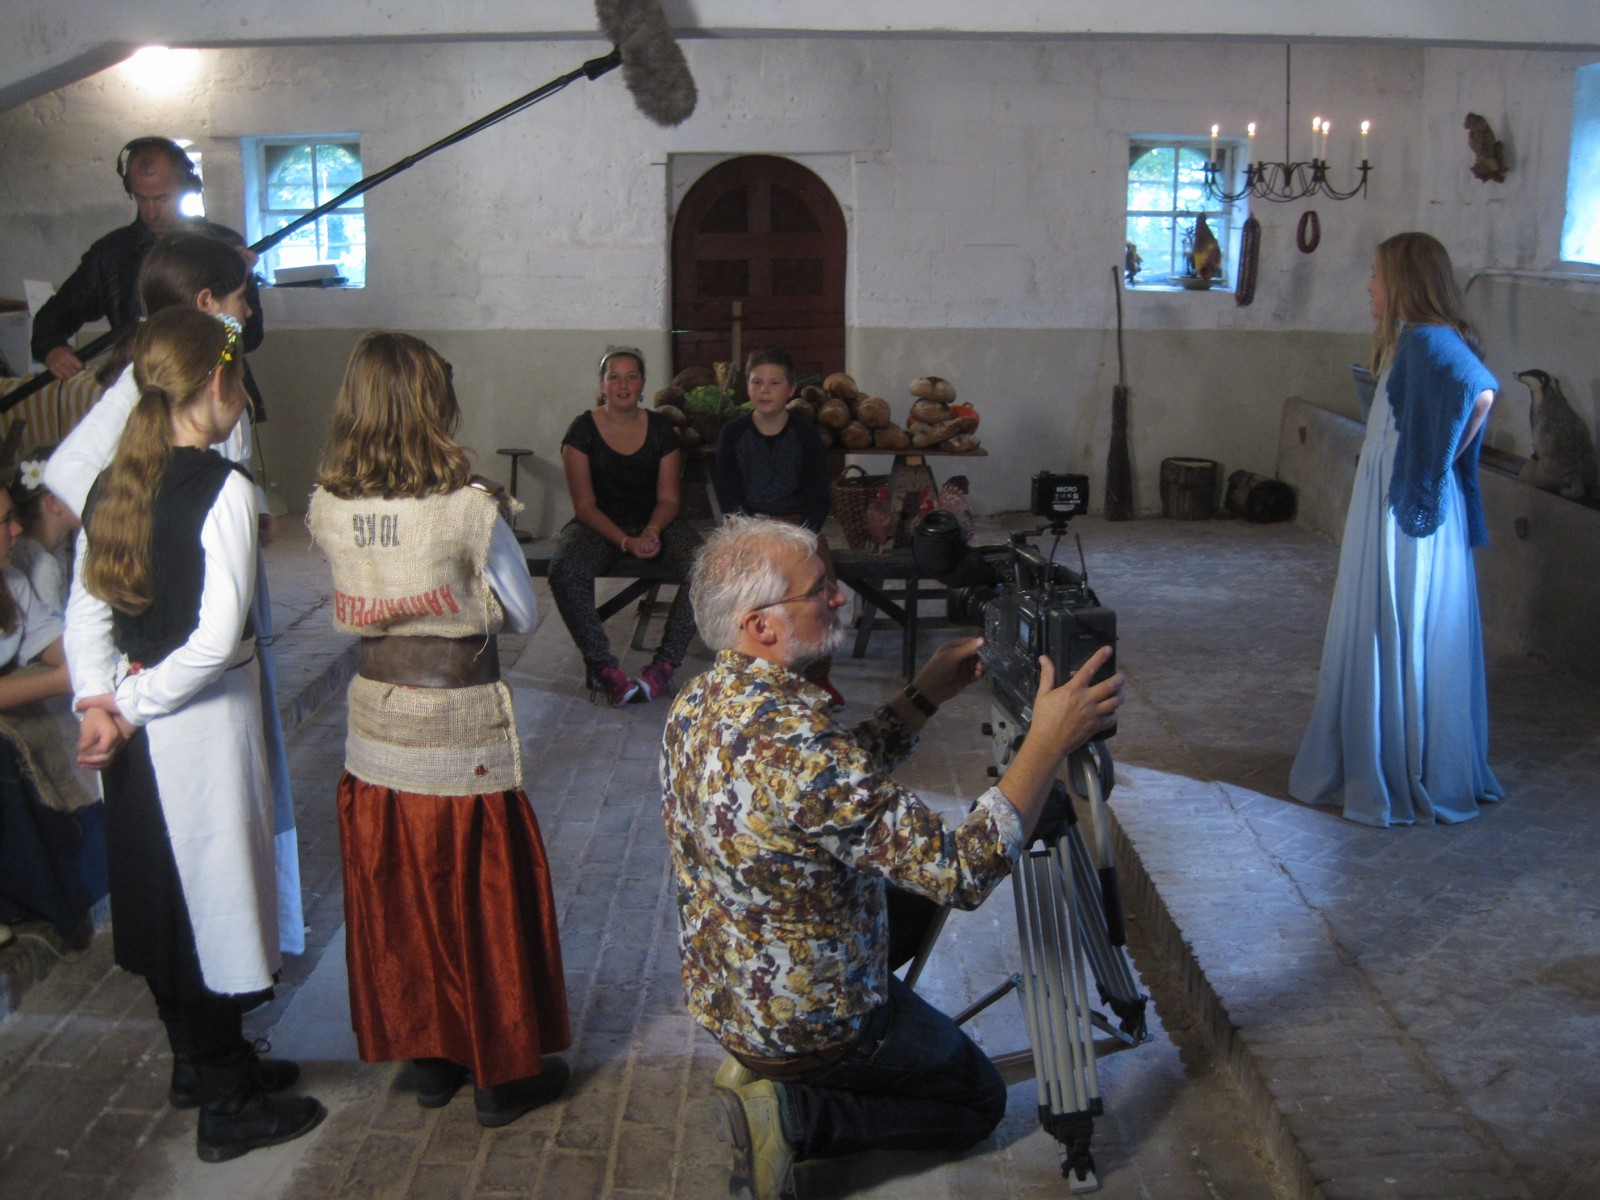 Filmproject Museum Land van Valkenburg